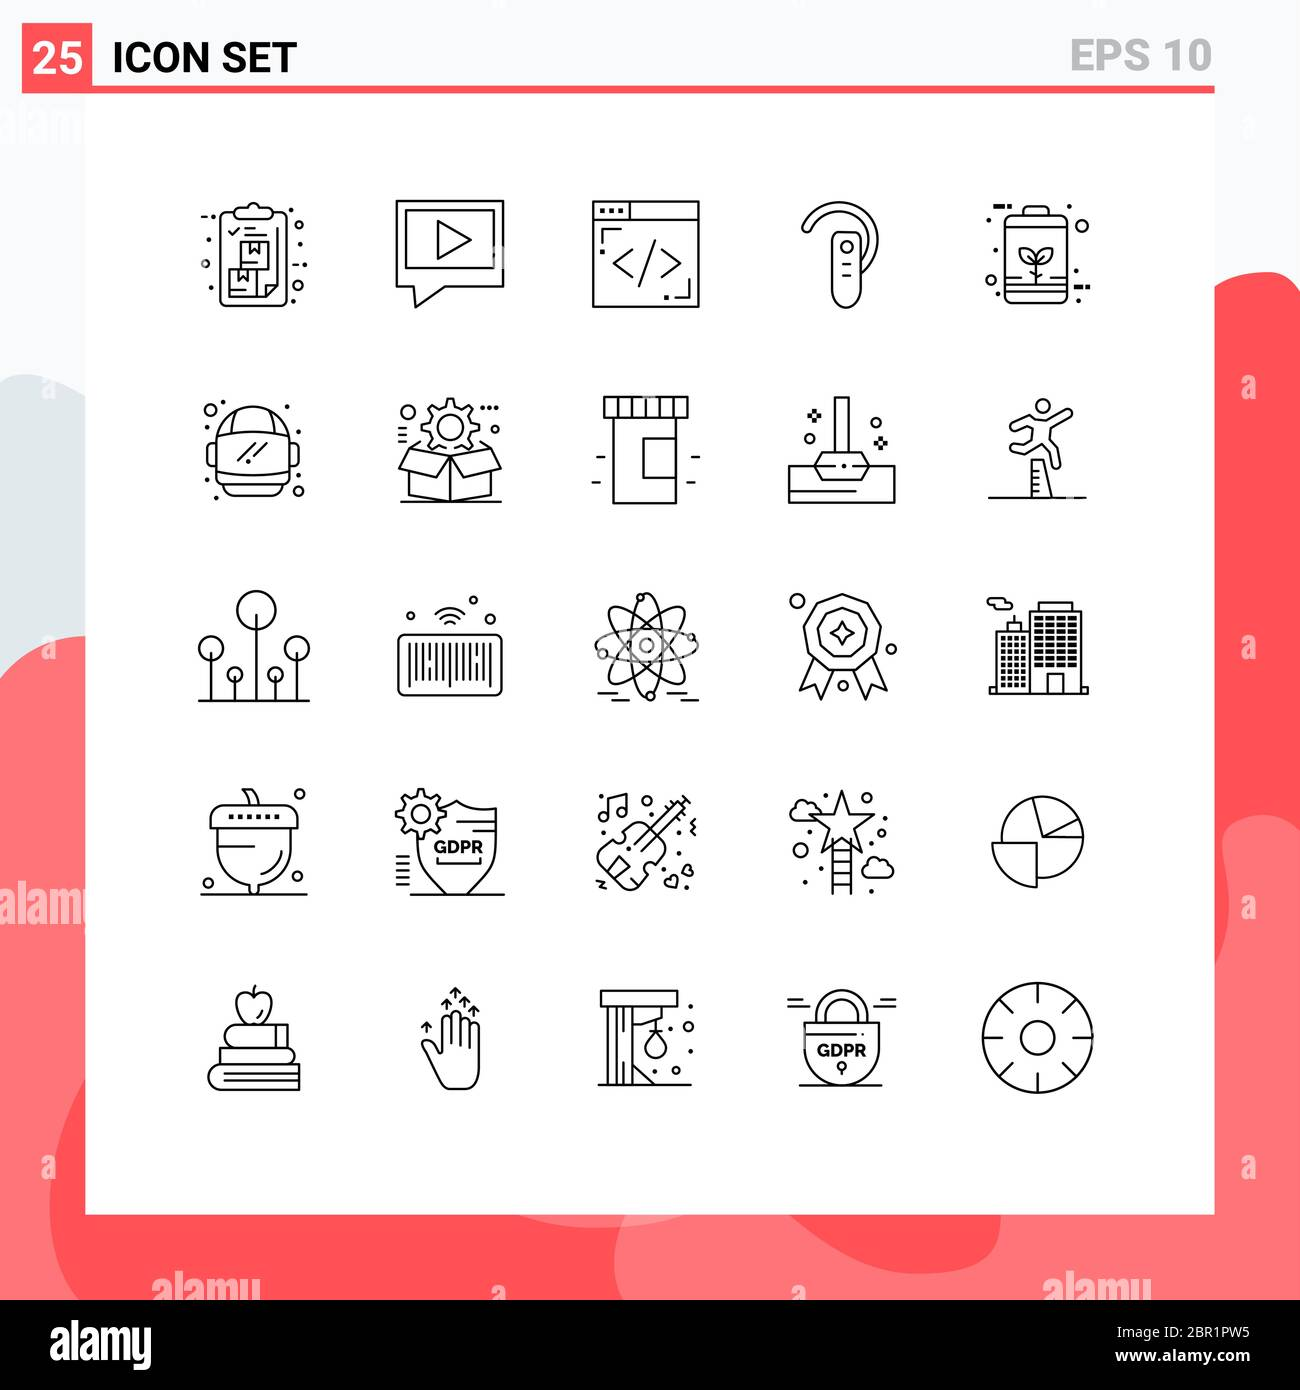 25 Thematic Vector Lines and Editable Symbols of eco, headset, coding, headphone, bluetooth Editable Vector Design Elements Stock Vector